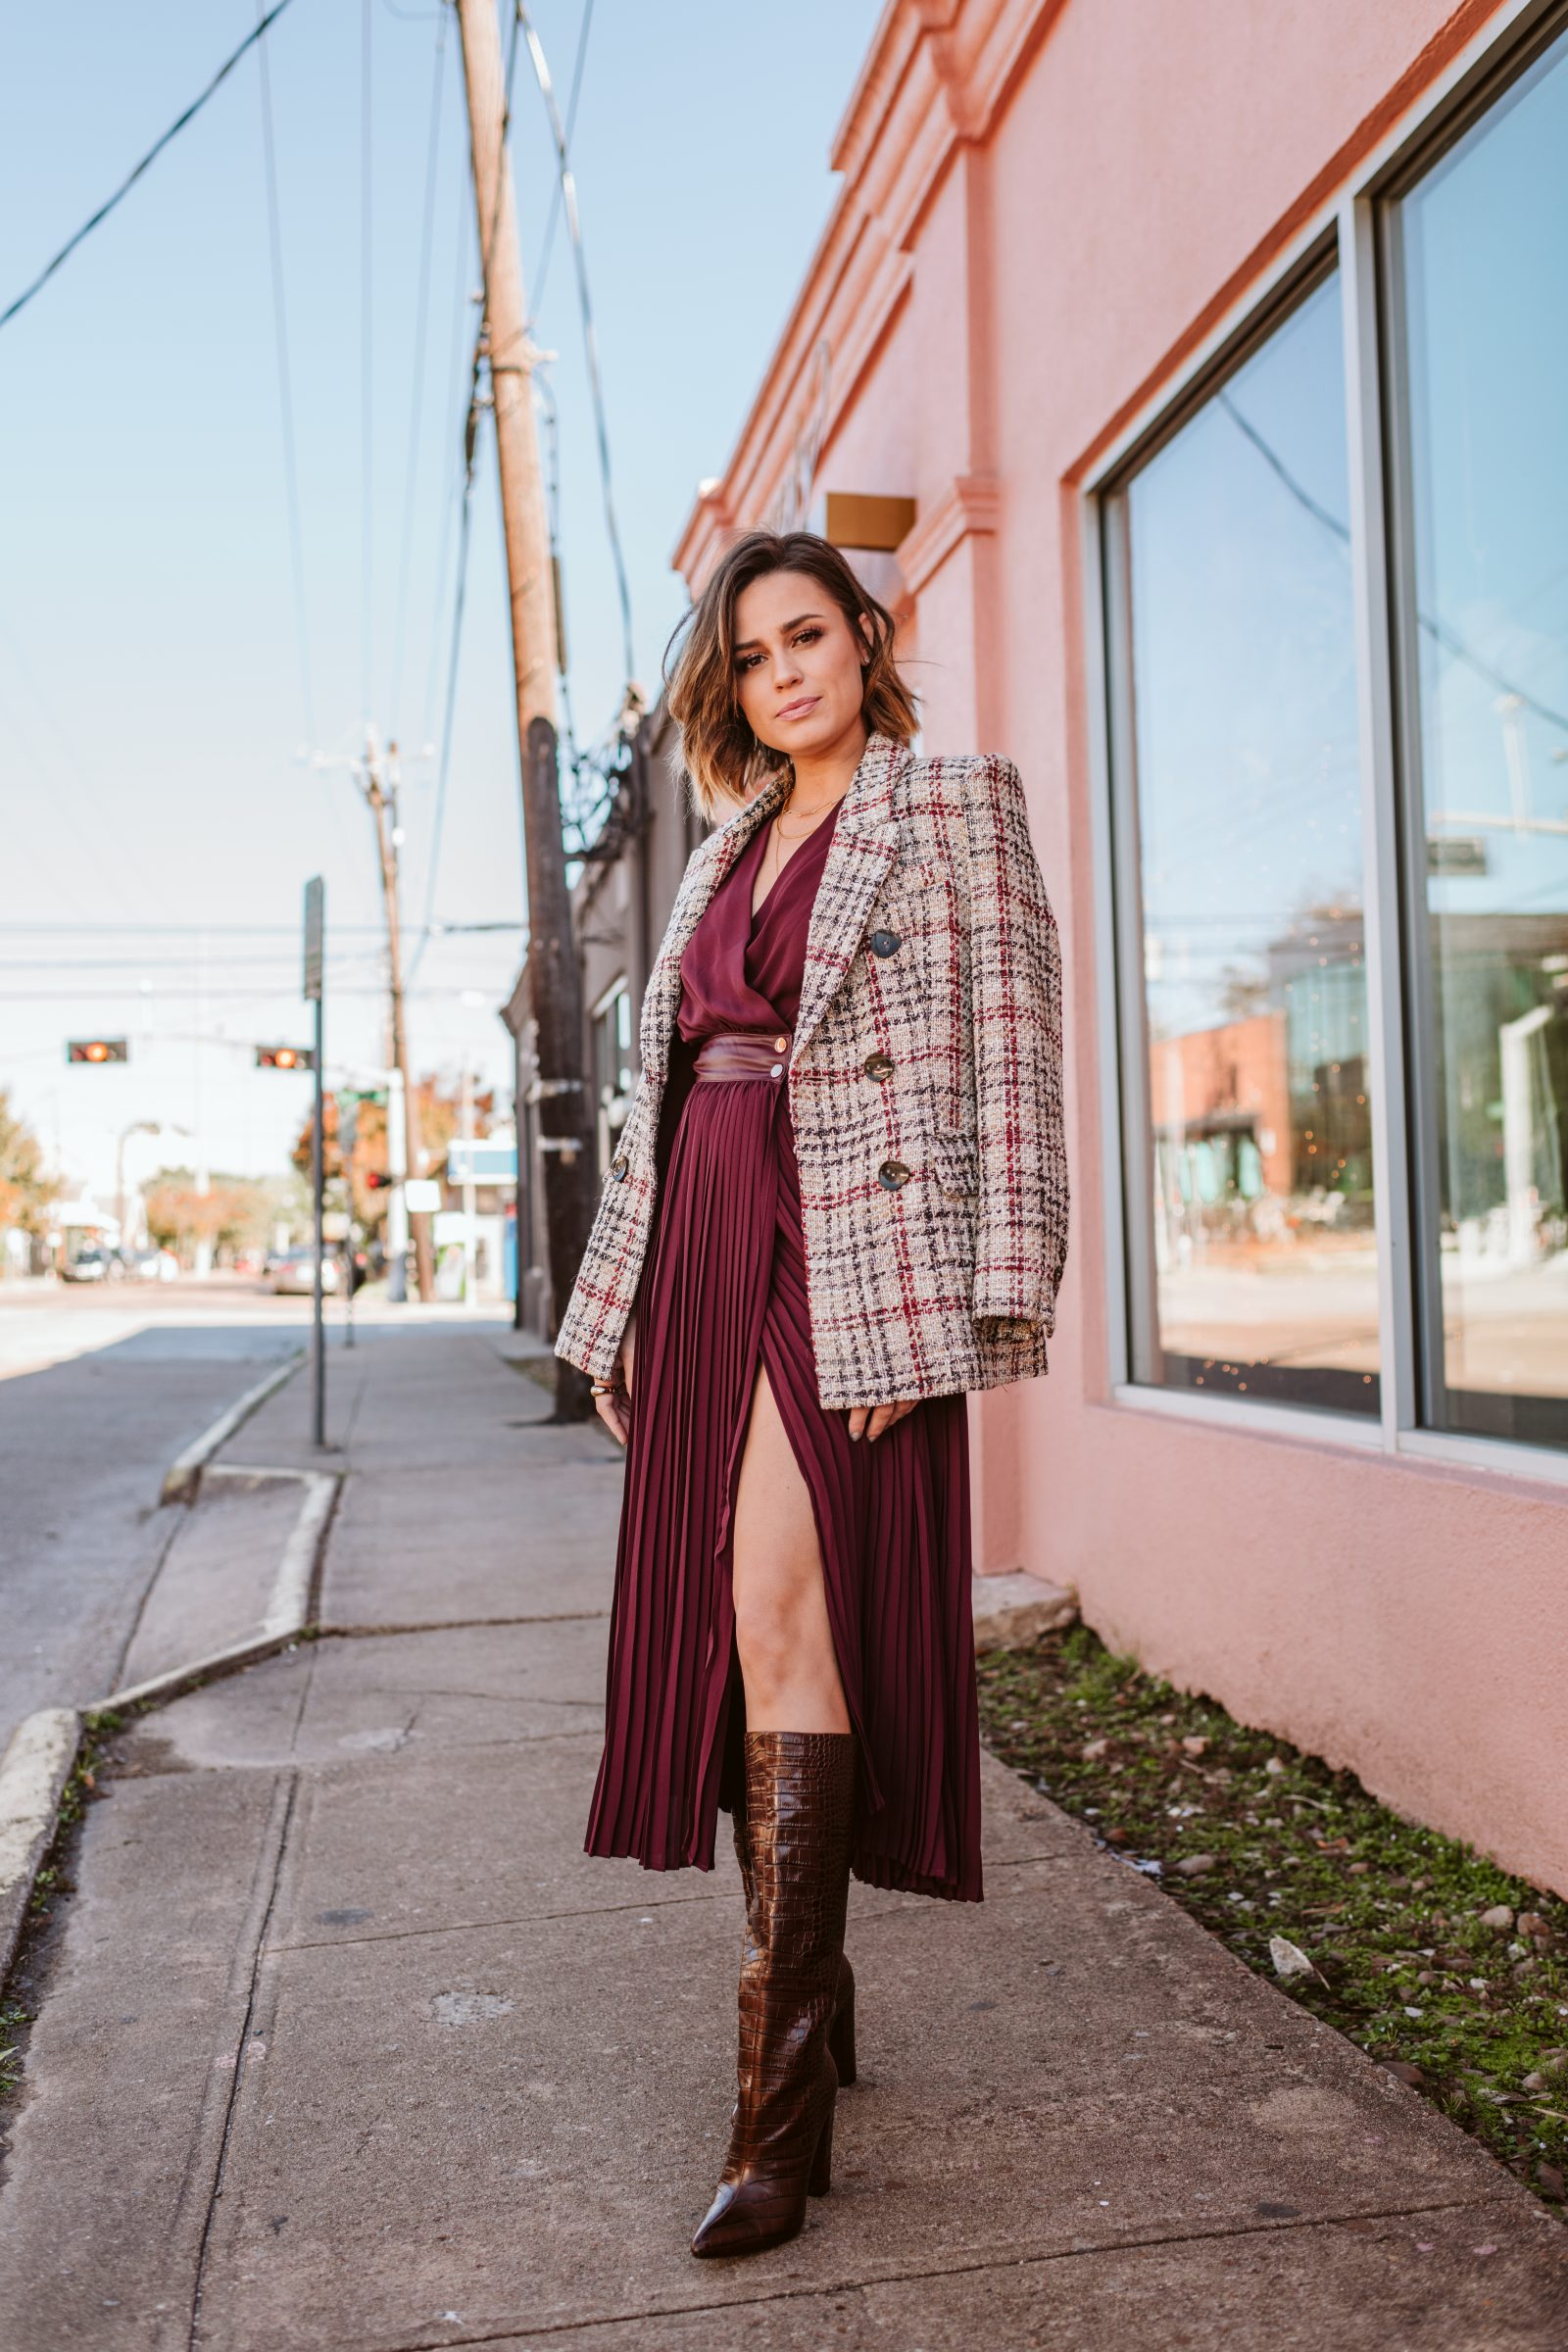 Elly Brown wears a zara dress and tweed blazer with knee high croc boots for a chic winter look